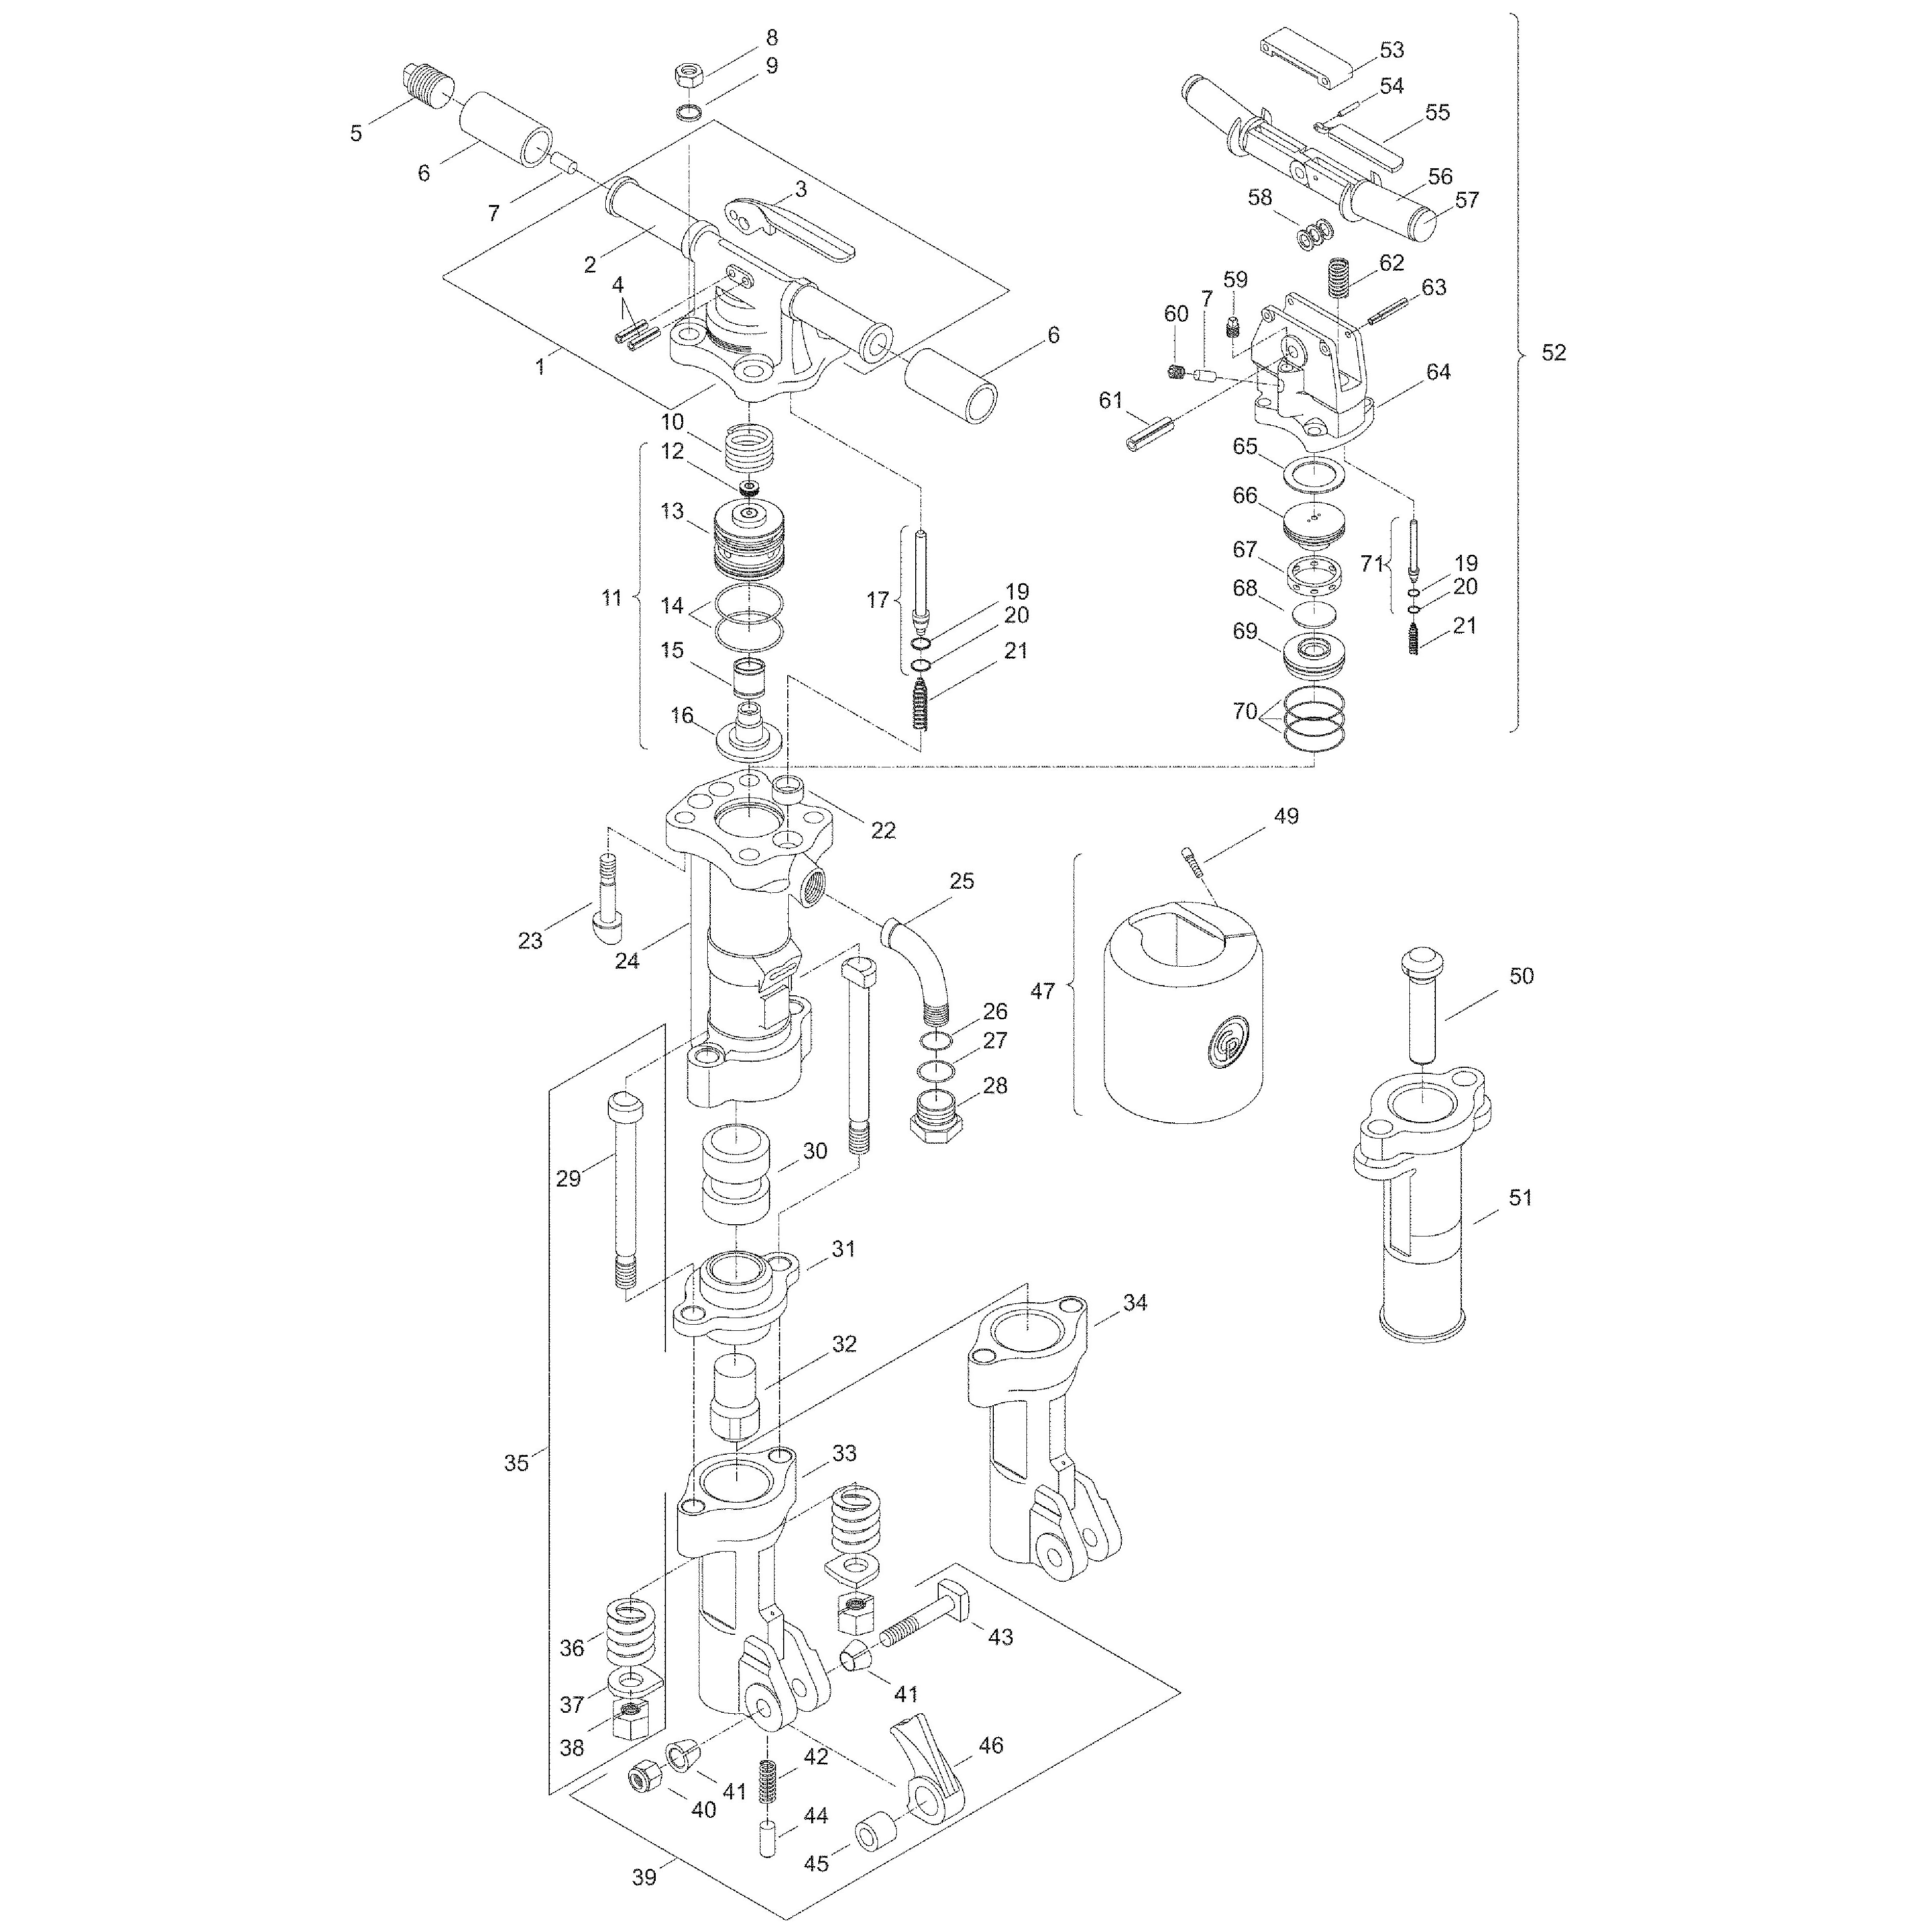 cp 1230 paving breaker 60 lb disc page 1 of 1 rh toolsrenewedparts com ditch witch 1230 parts diagram Ditch Witch 1230 Parts Belts